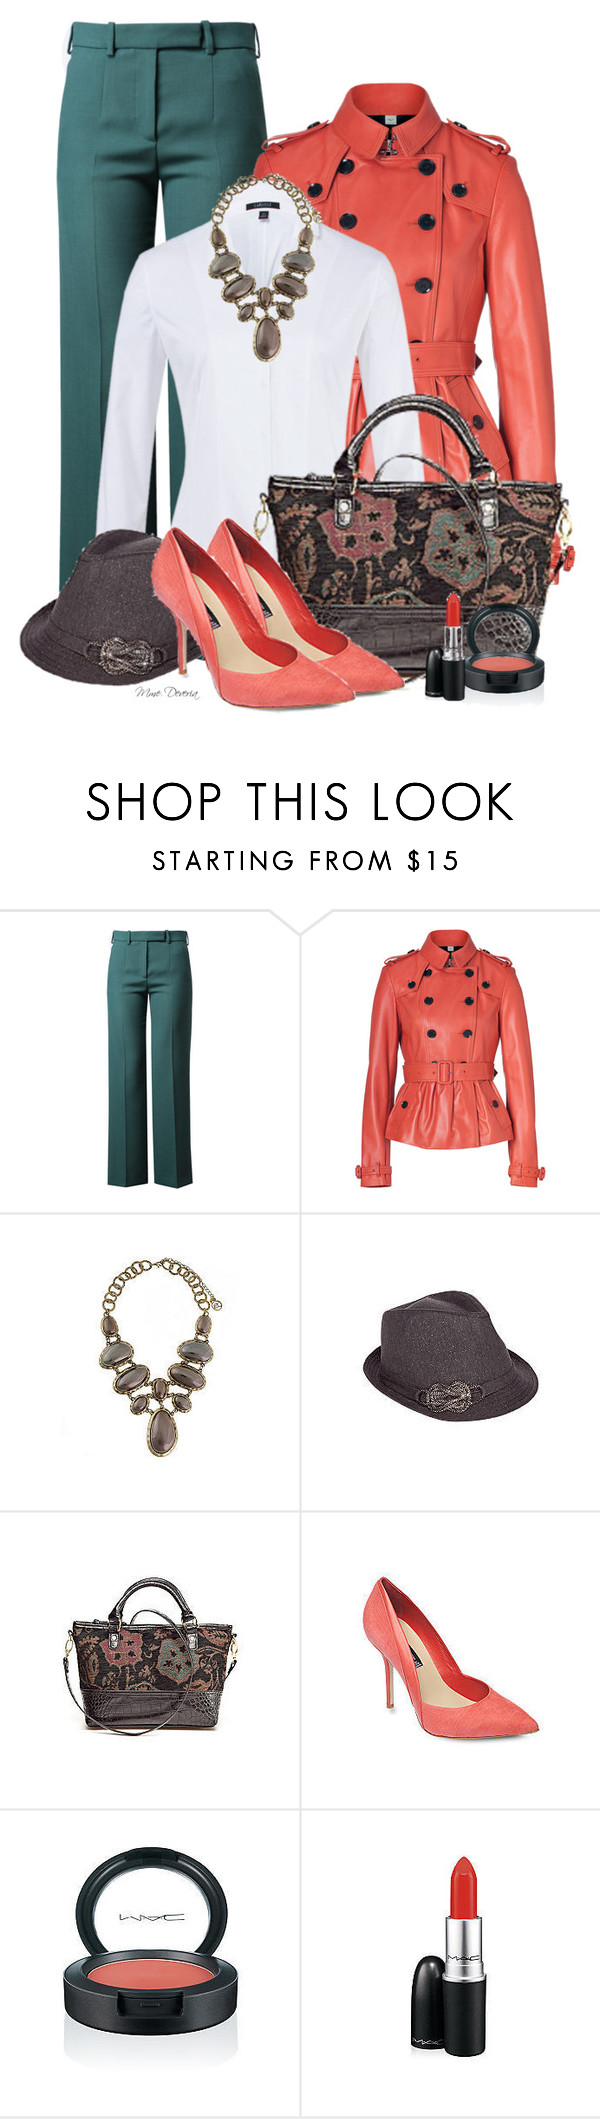 """Interview at the Art Gallery"" by madamedeveria ❤ liked on Polyvore featuring Carven, Burberry, Erica Lyons, Kim Rogers and MAC Cosmetics"